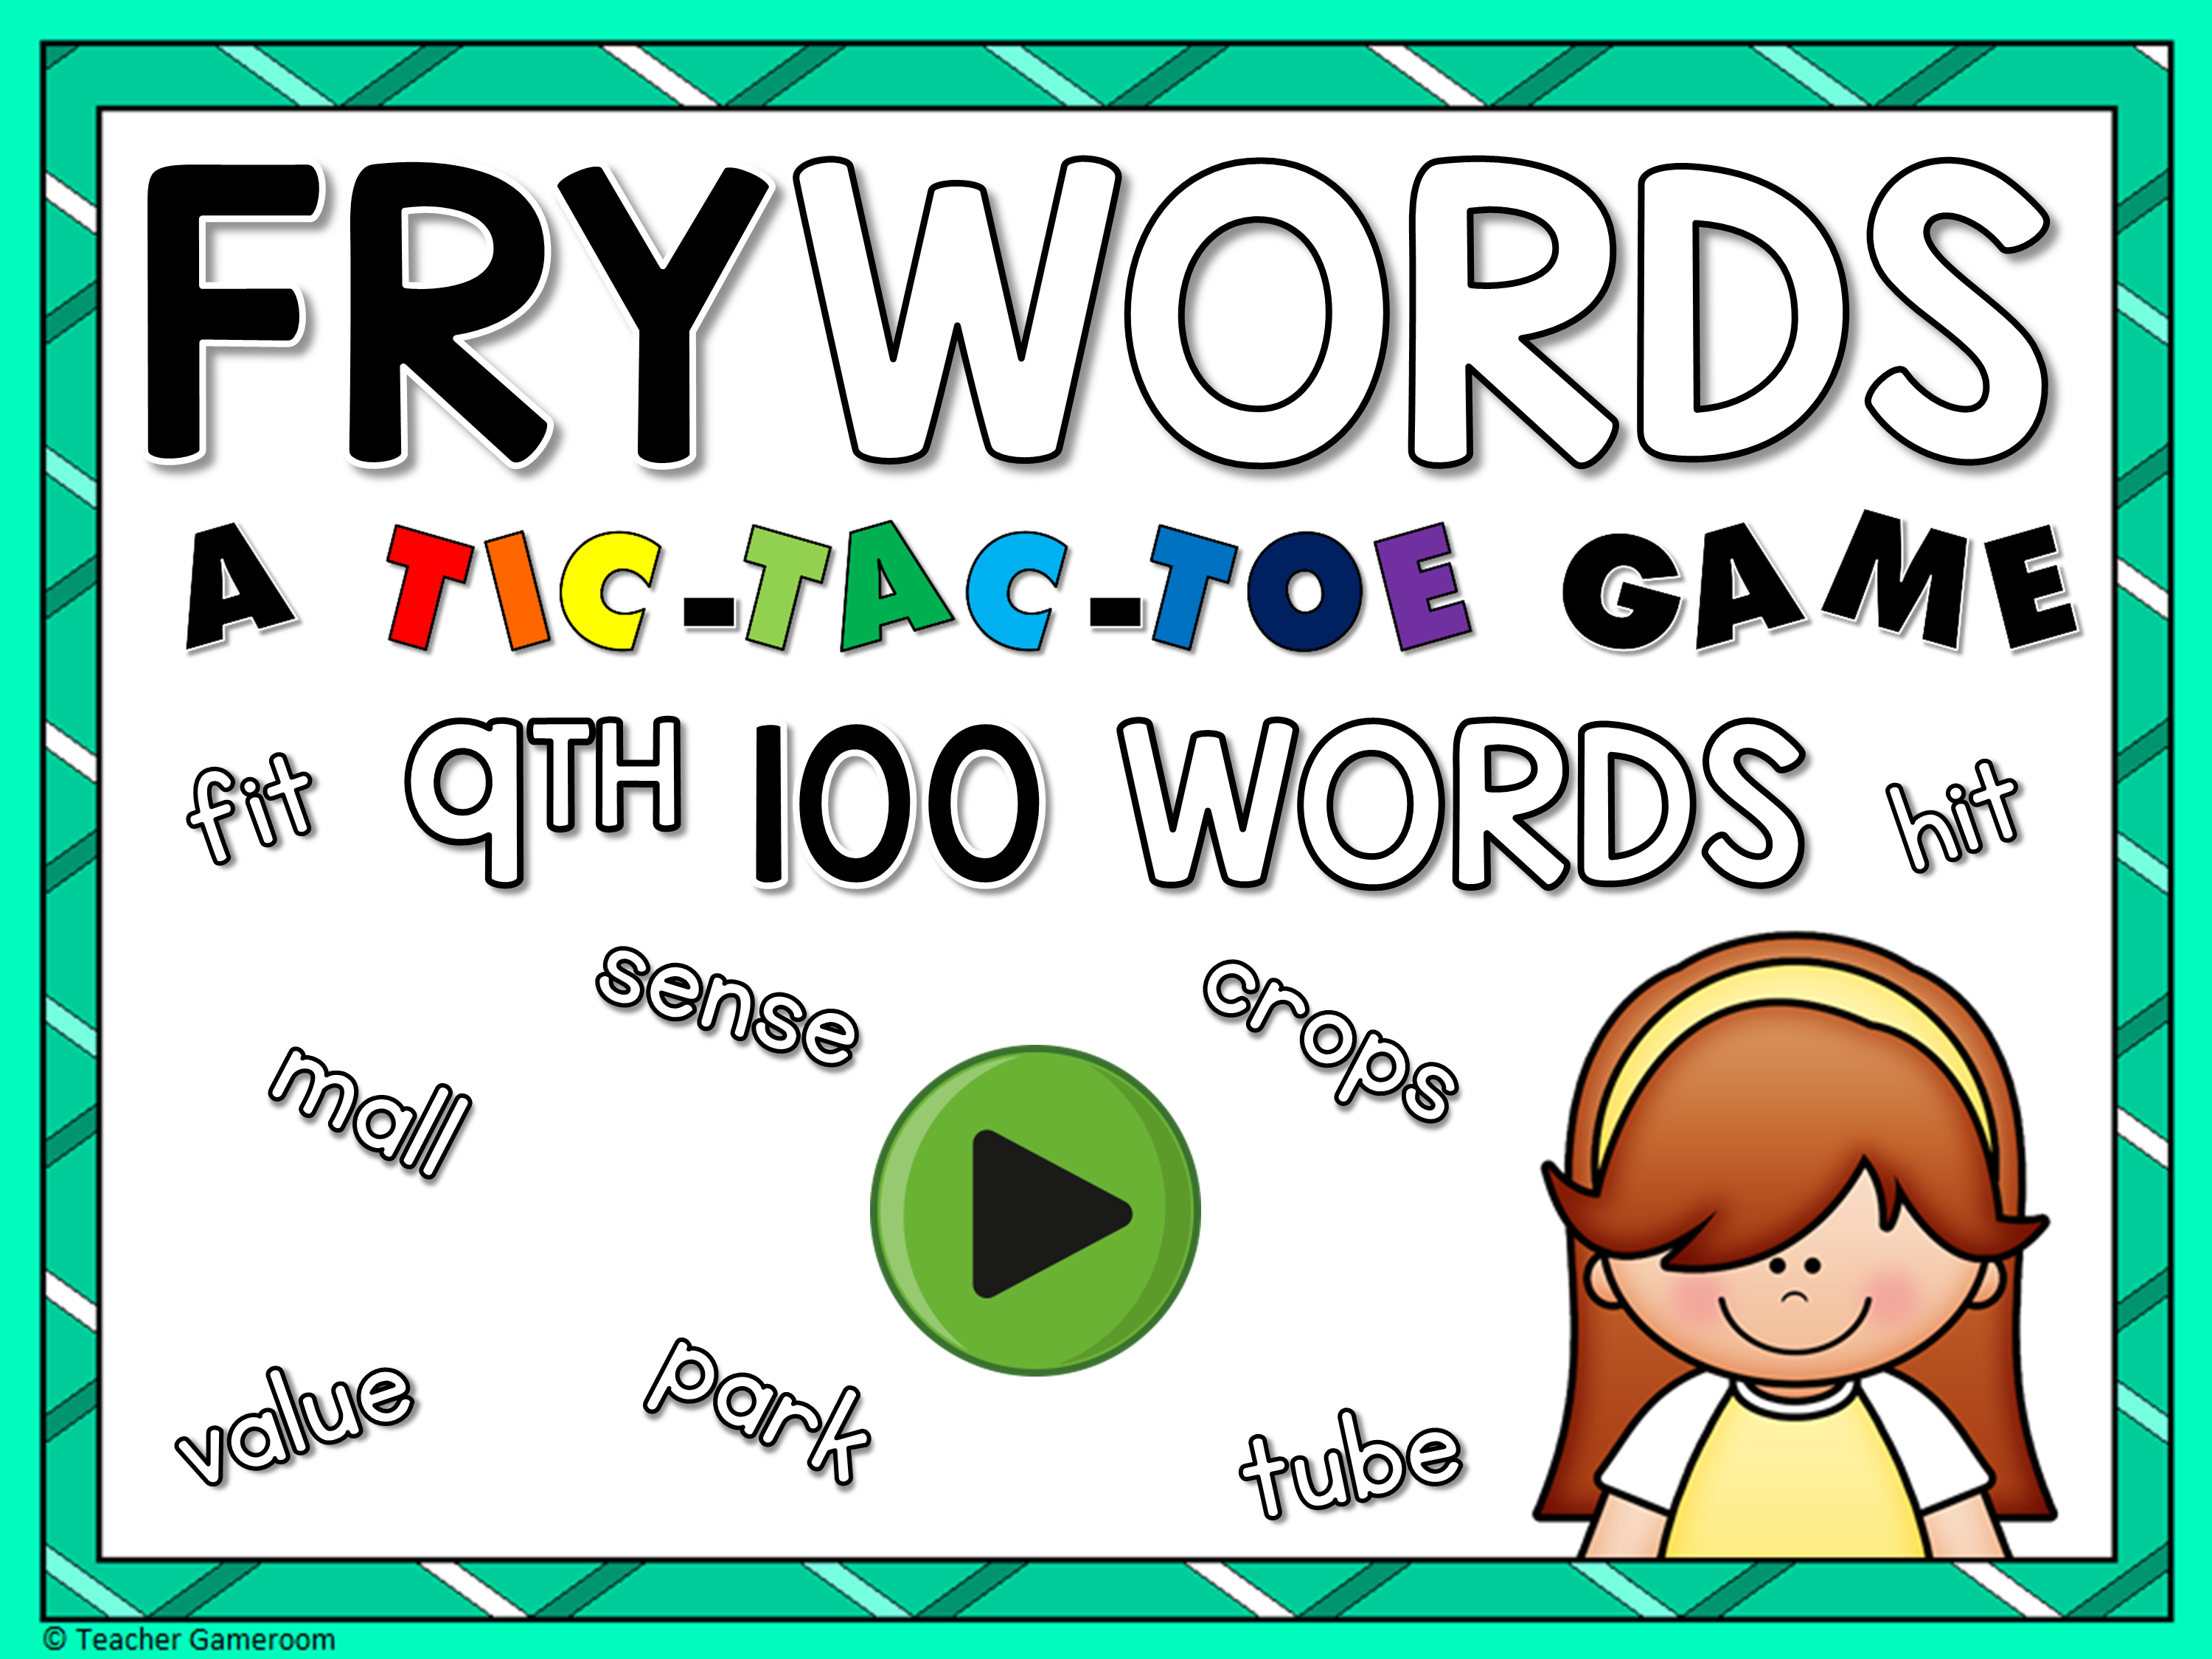 Tic-Tac-Toe Fry Words 9th 100 Game